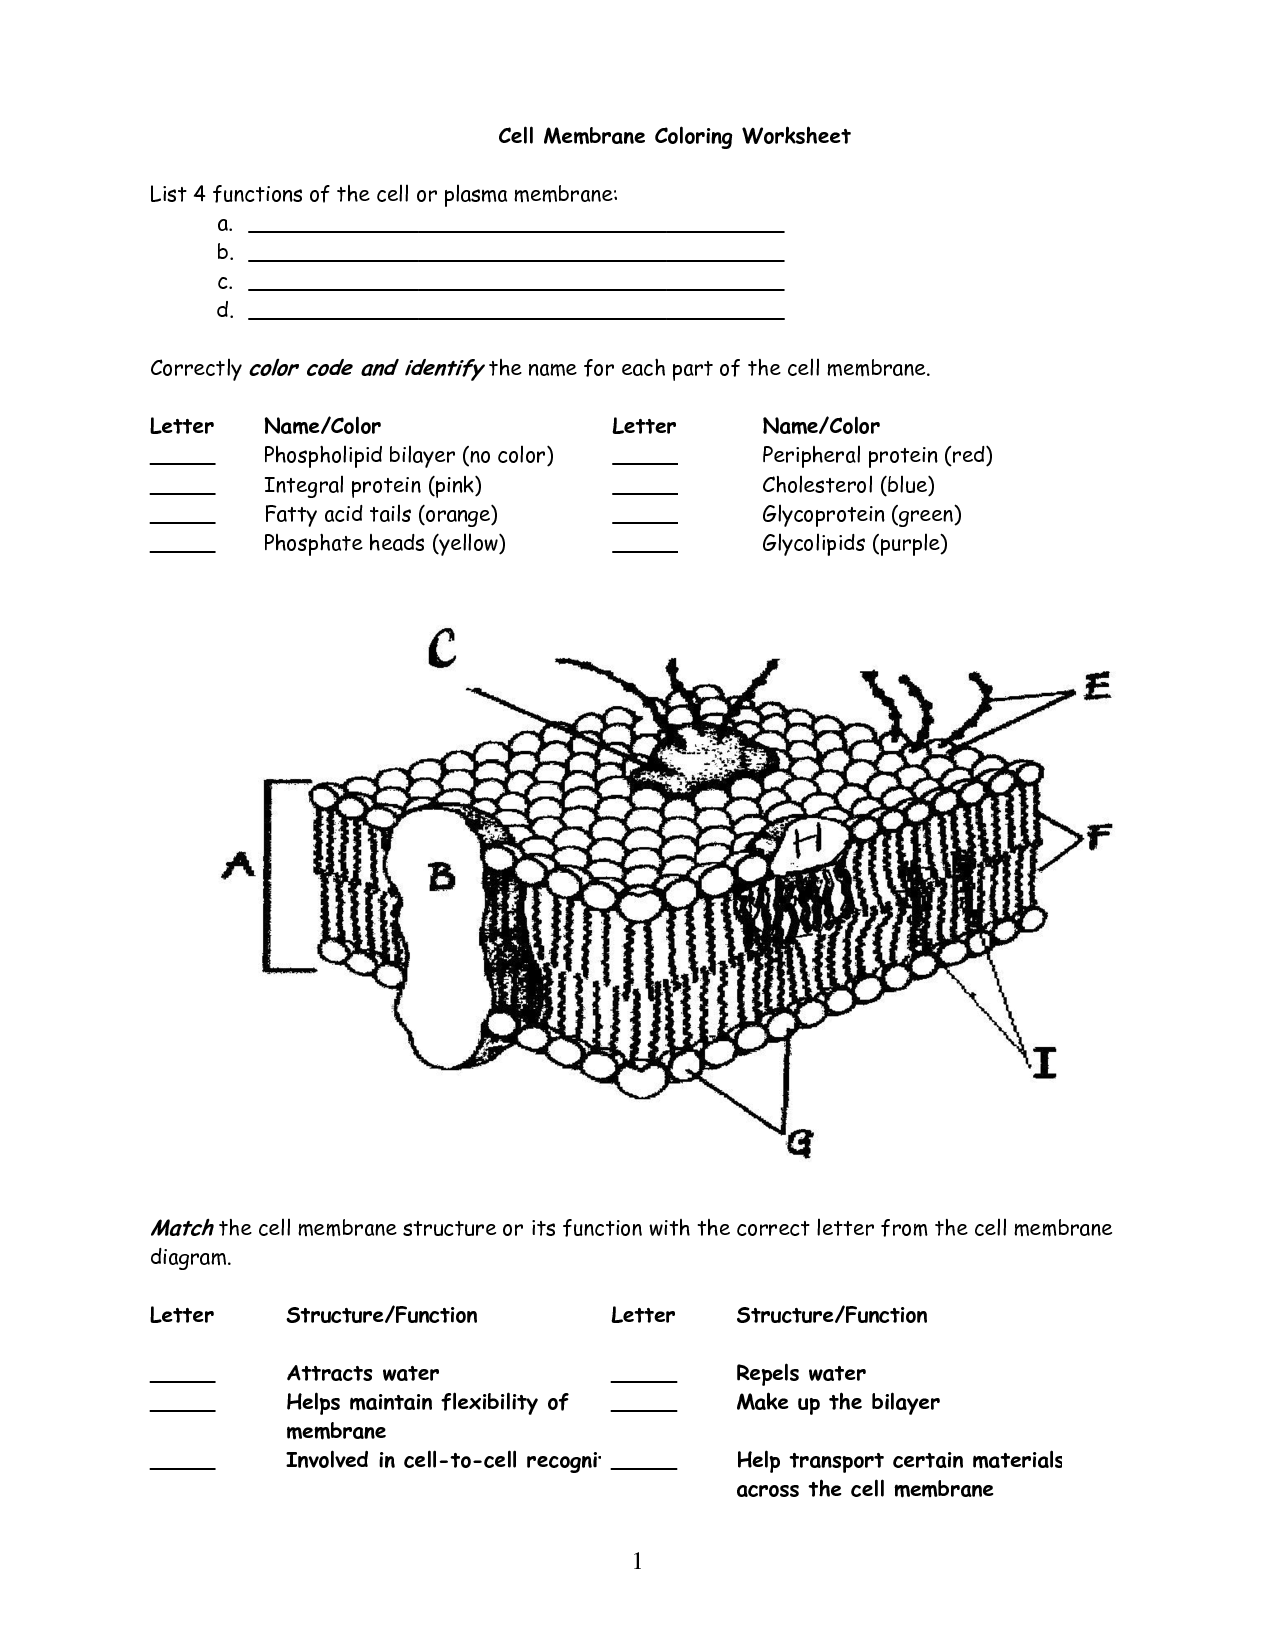 Cell Membrane Worksheet Answers Biology Worksheet